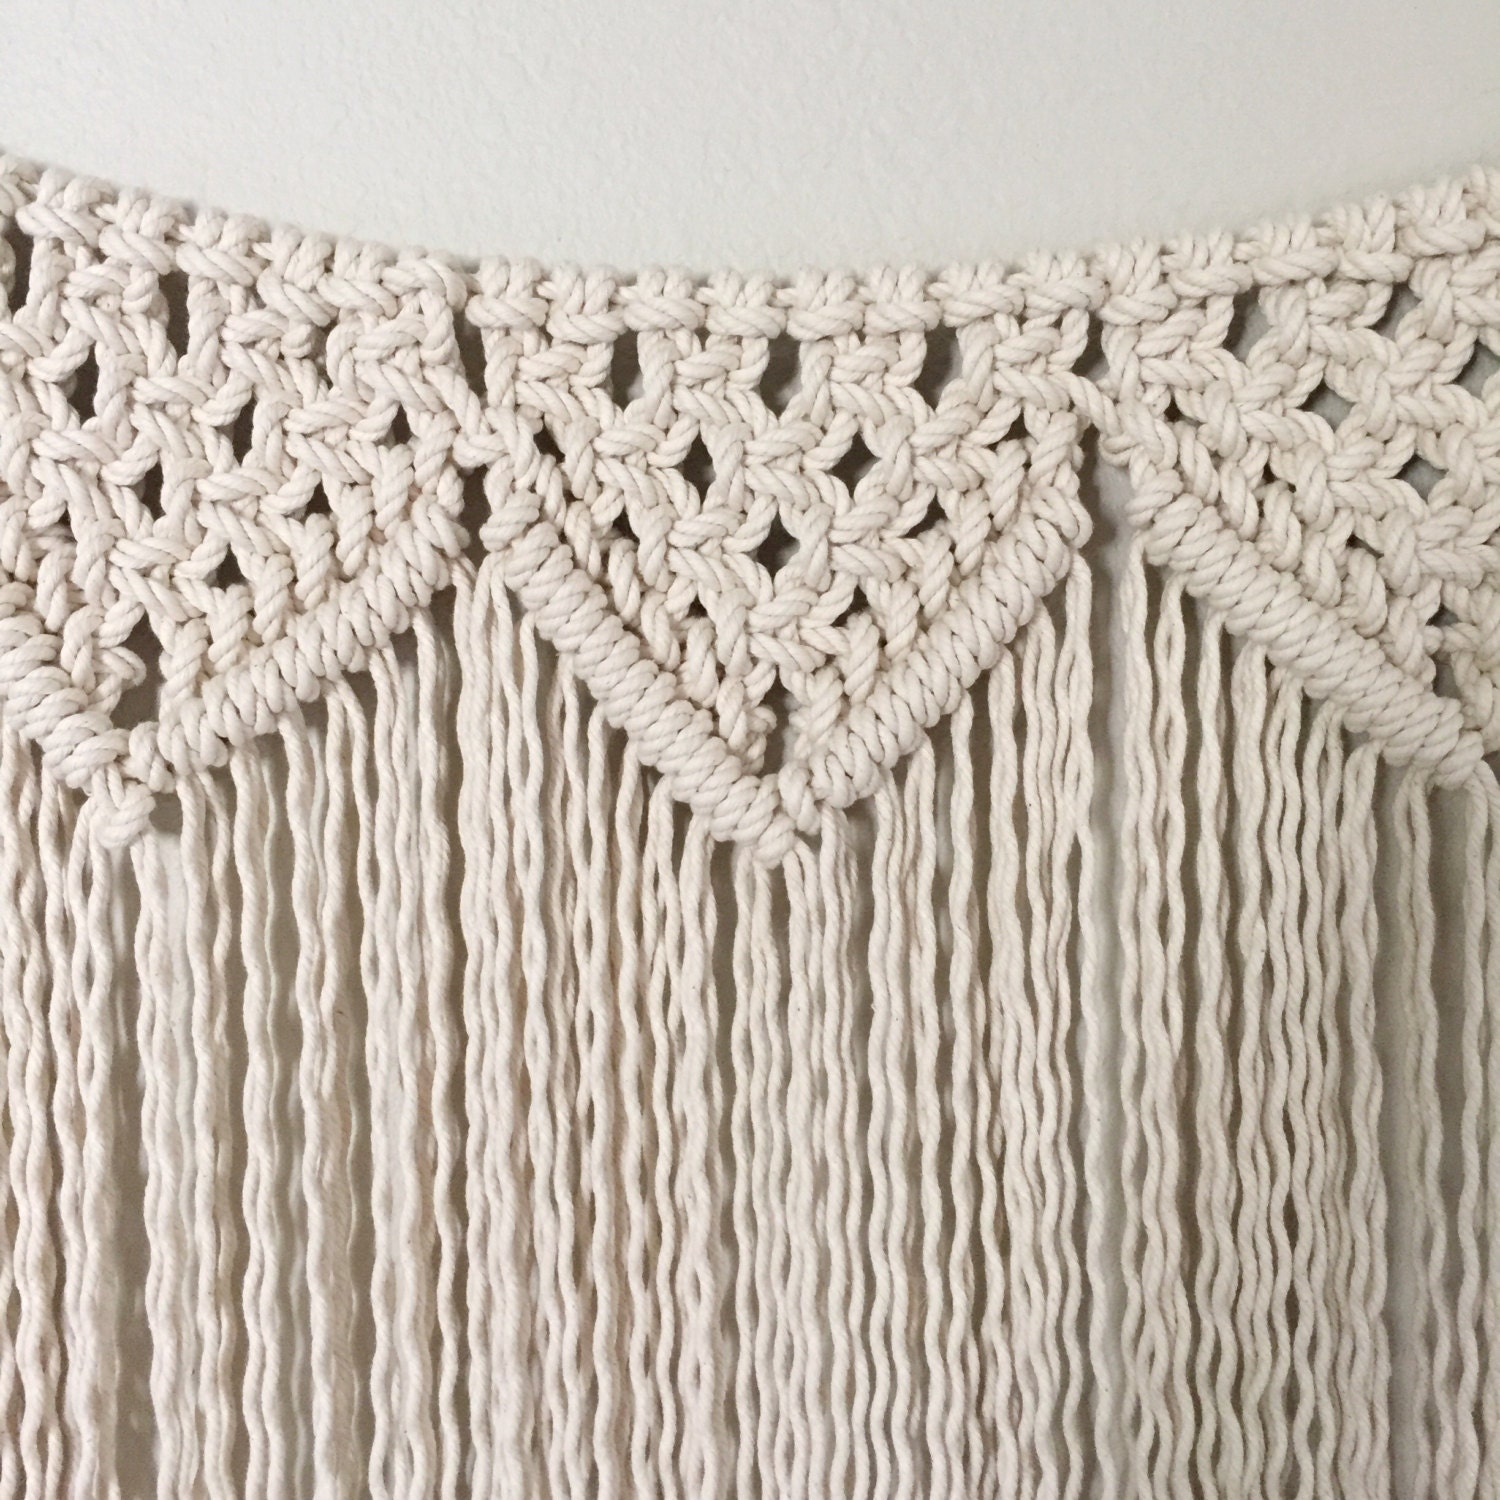 Macrame Patterns Macrame Pattern Large Macrame Wall